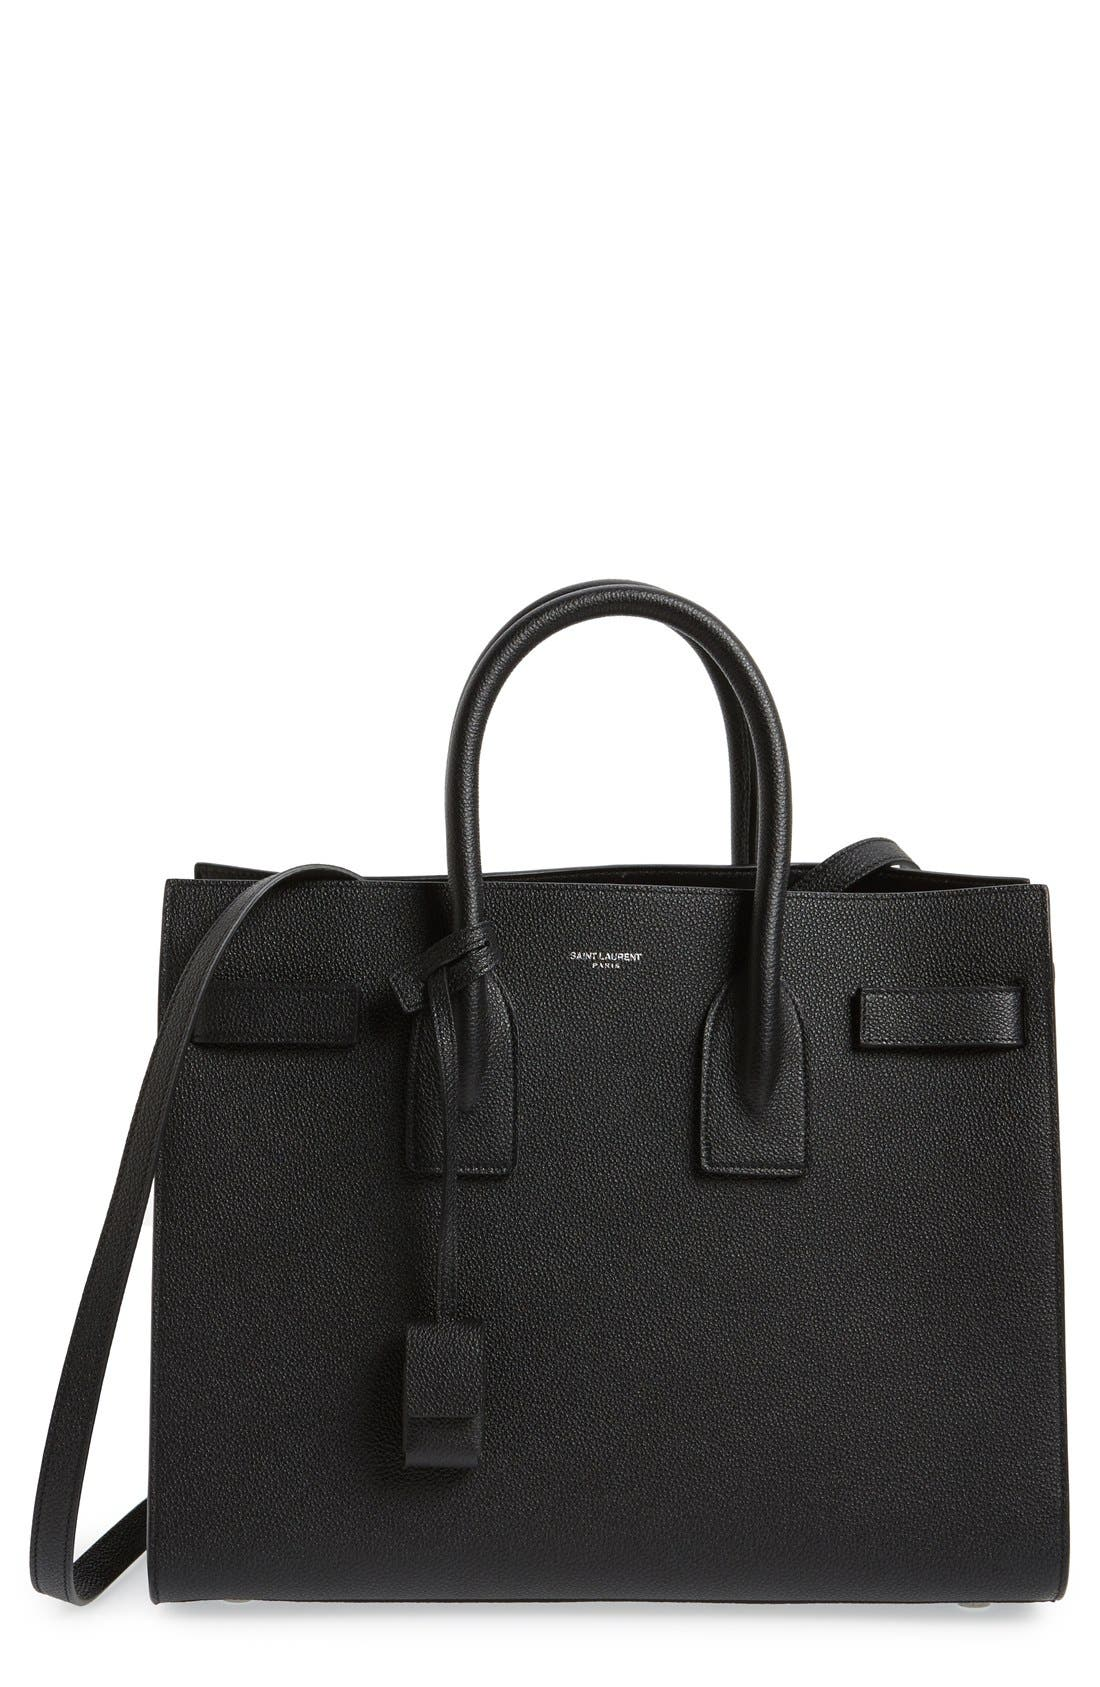 'Small Sac de Jour' Leather Tote,                         Main,                         color, NOIR